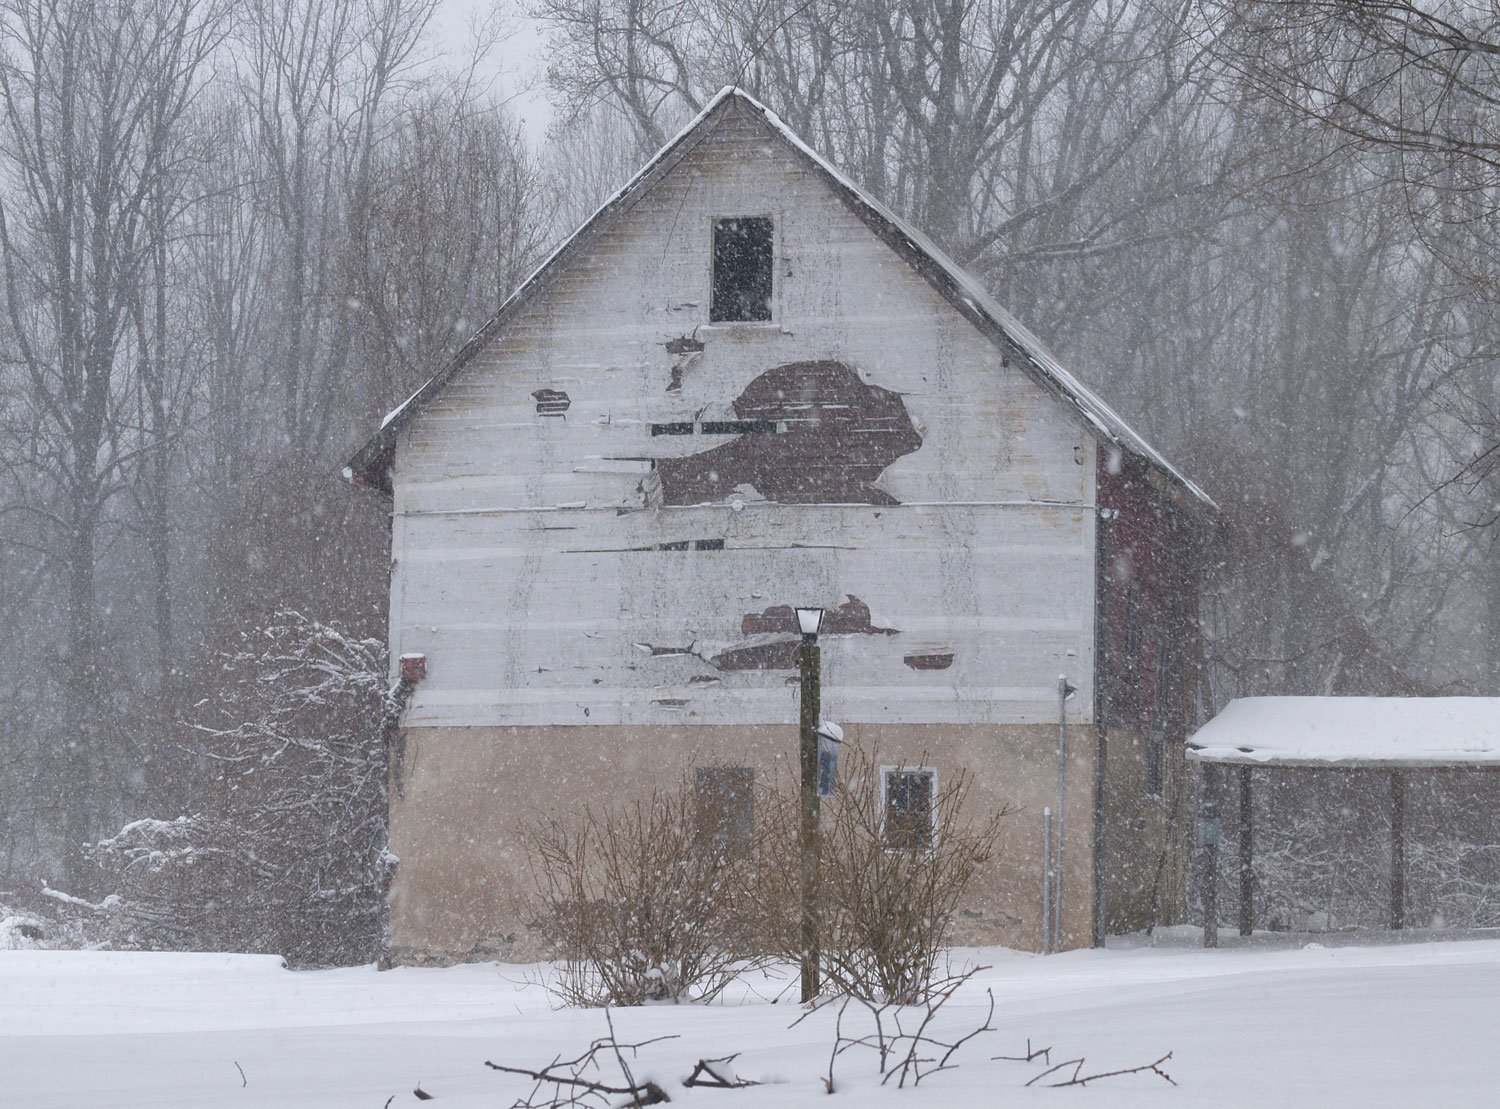 Installation view of  Human Birdhouse  in snow at the Schuykill Center, Pennsylvania, USA, January 2009.